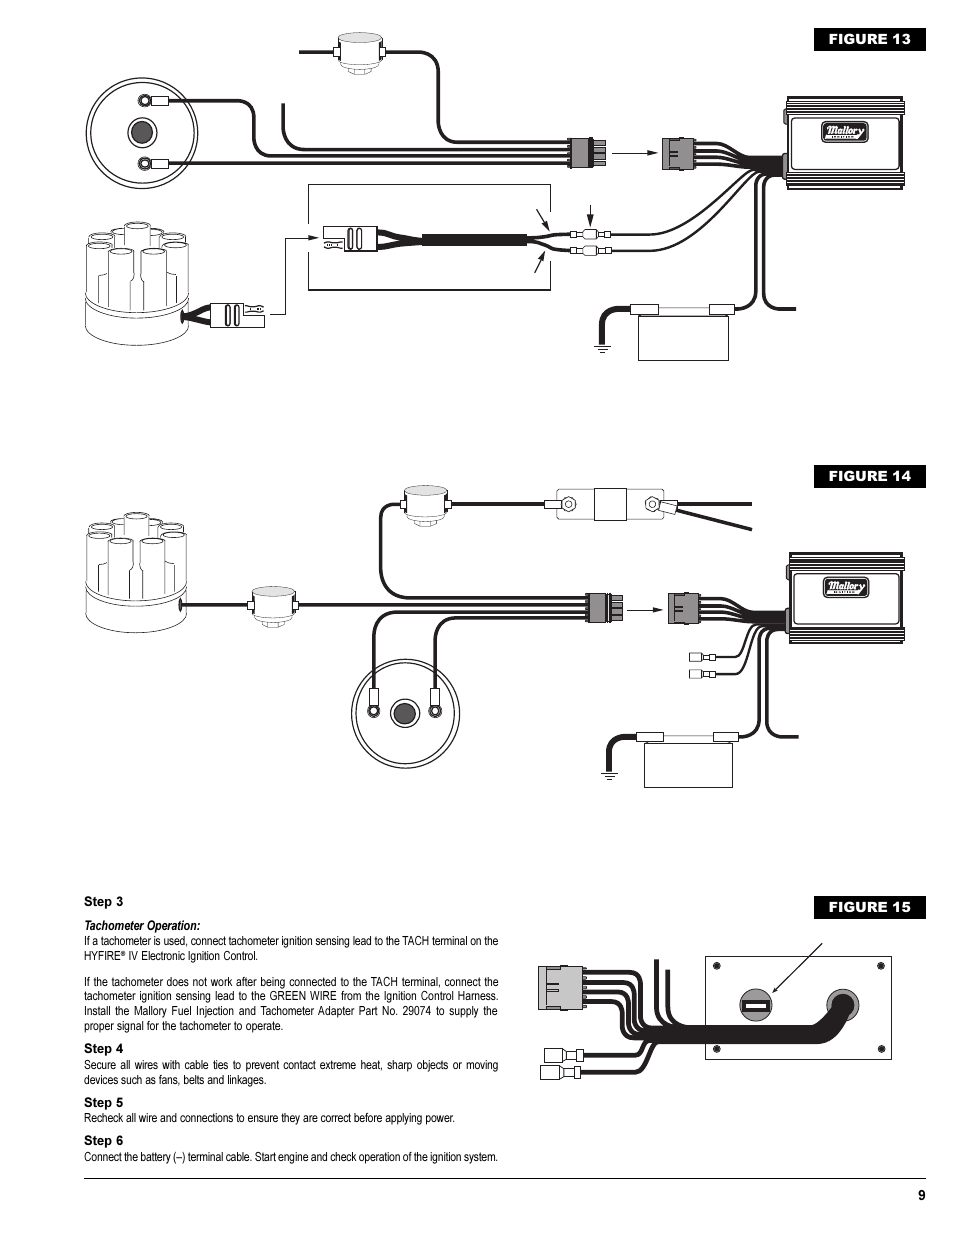 Mallory 8548201 Hei Wiring Diagram Trusted Schematics 5048201 Inspiring Hyfire Septic Field Gm Distributor